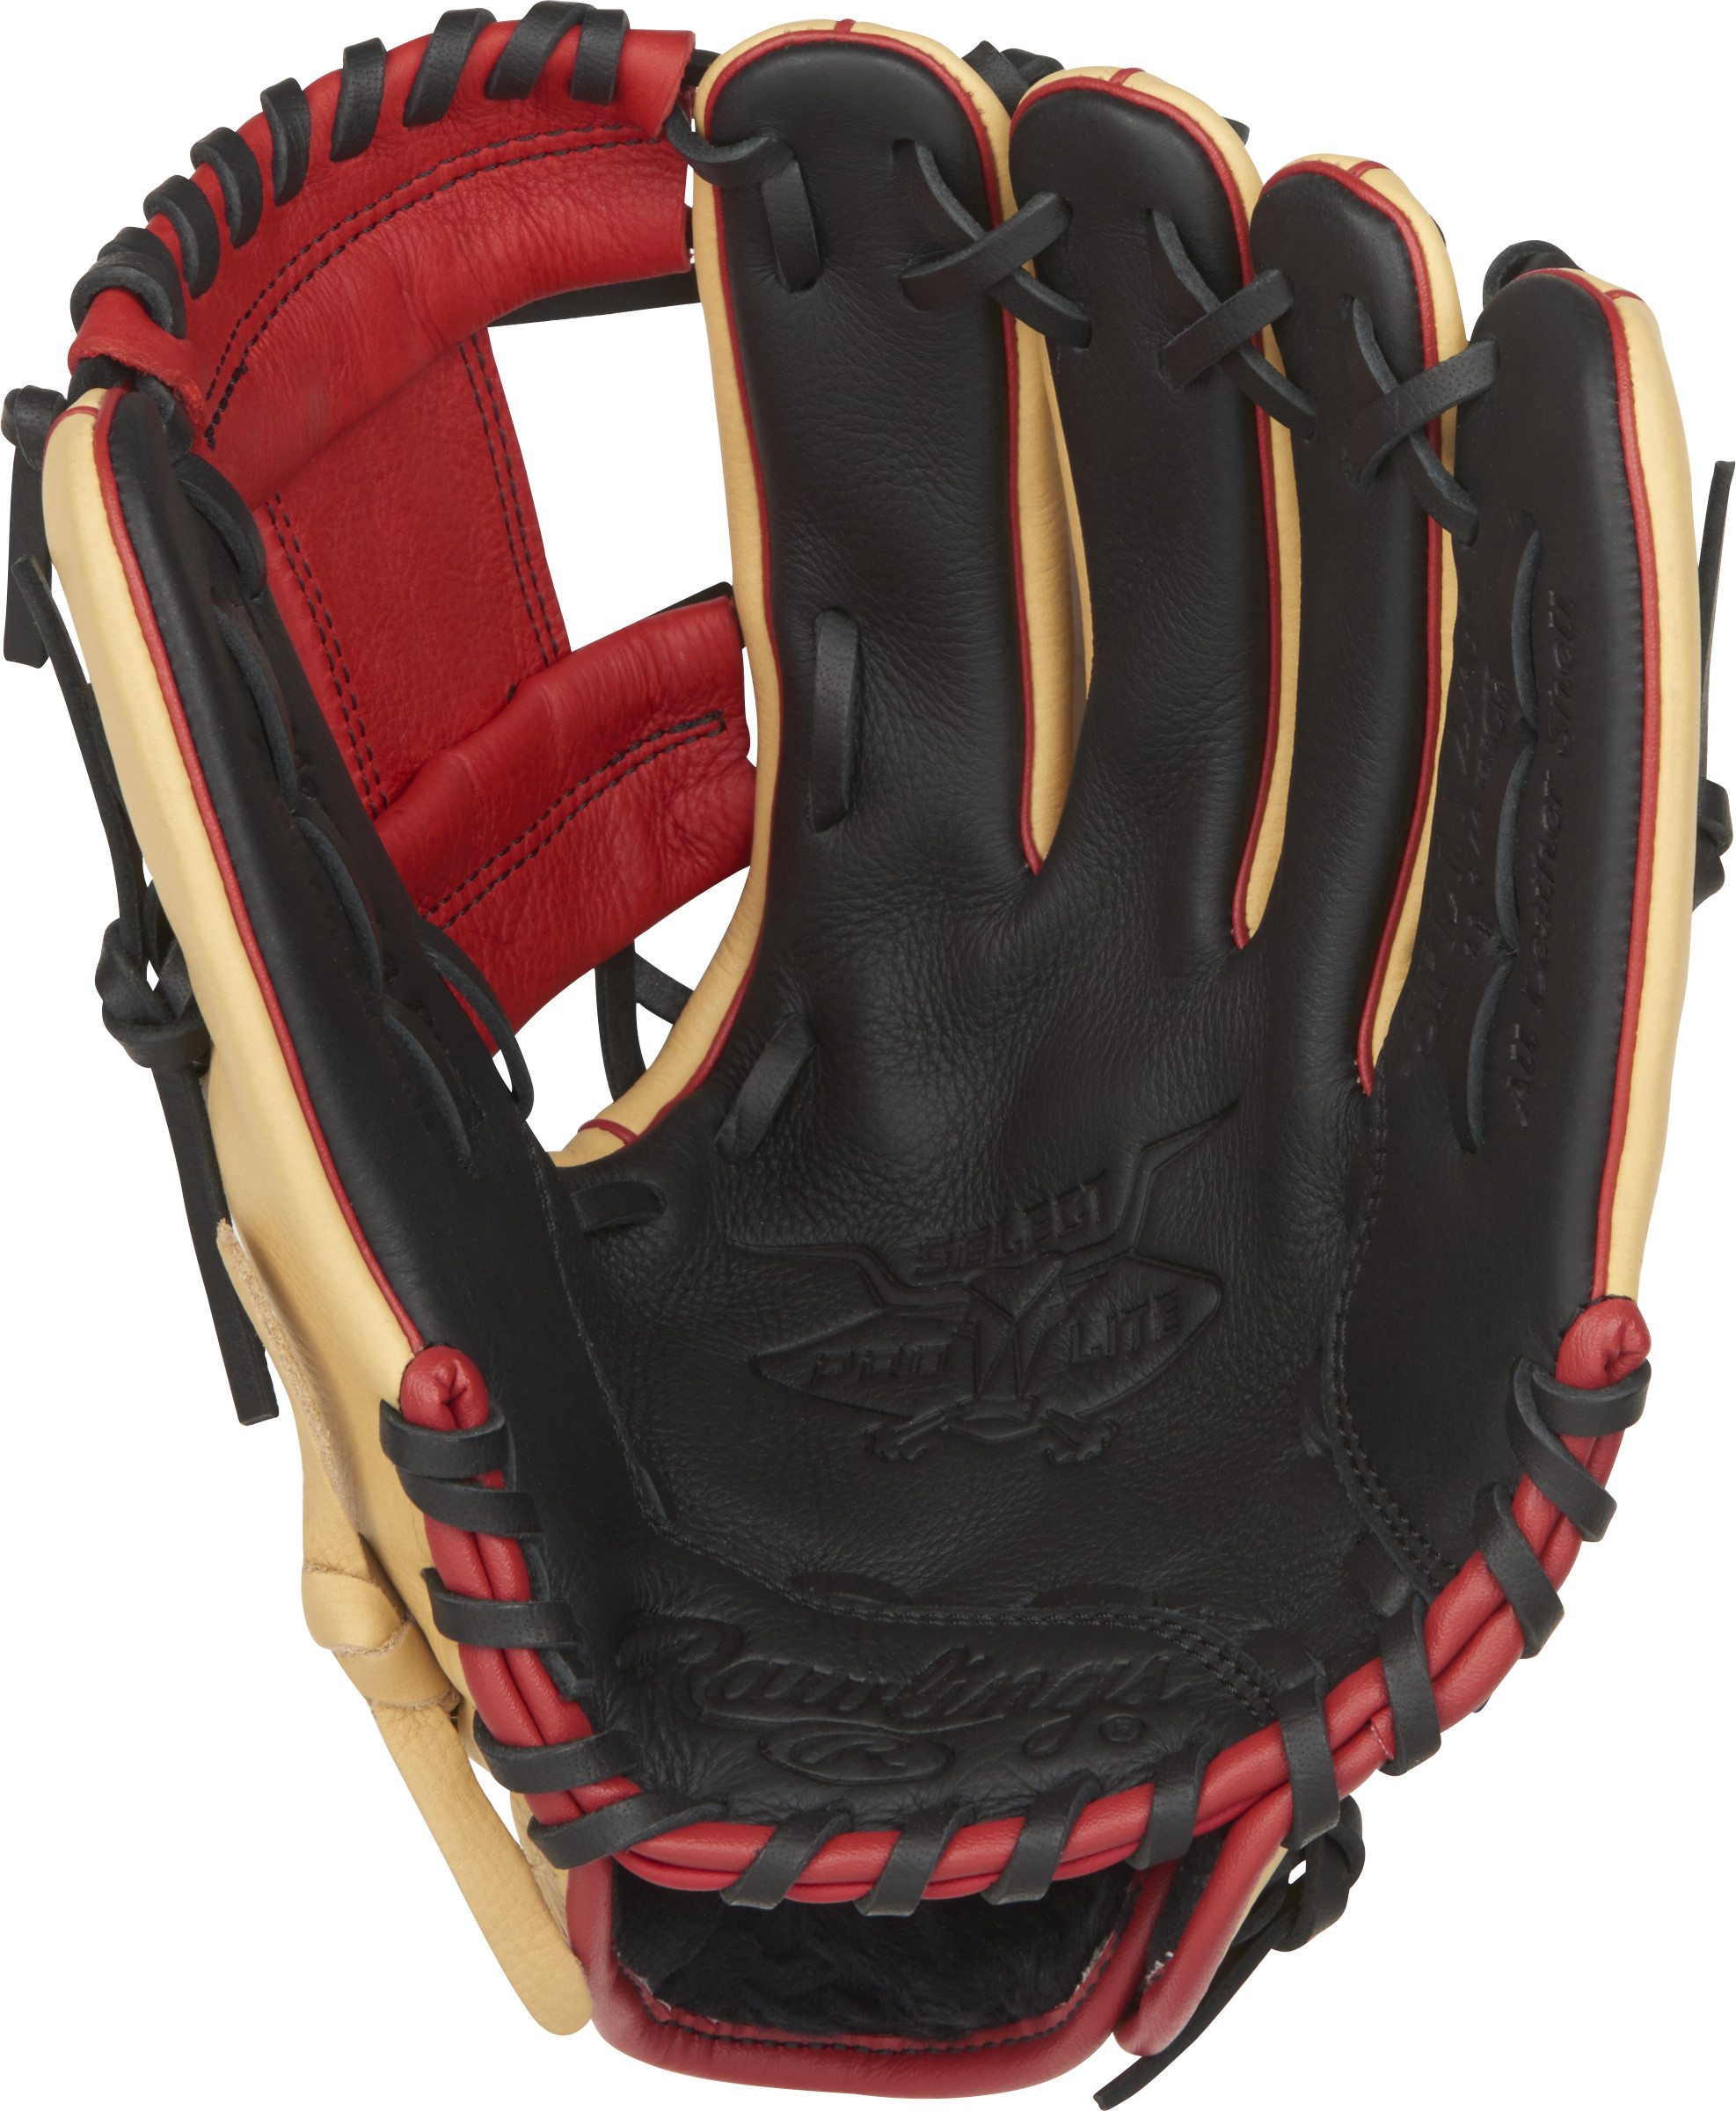 http://www.bestbatdeals.com/images/gloves/rawlings/SPL112AR-1.jpg